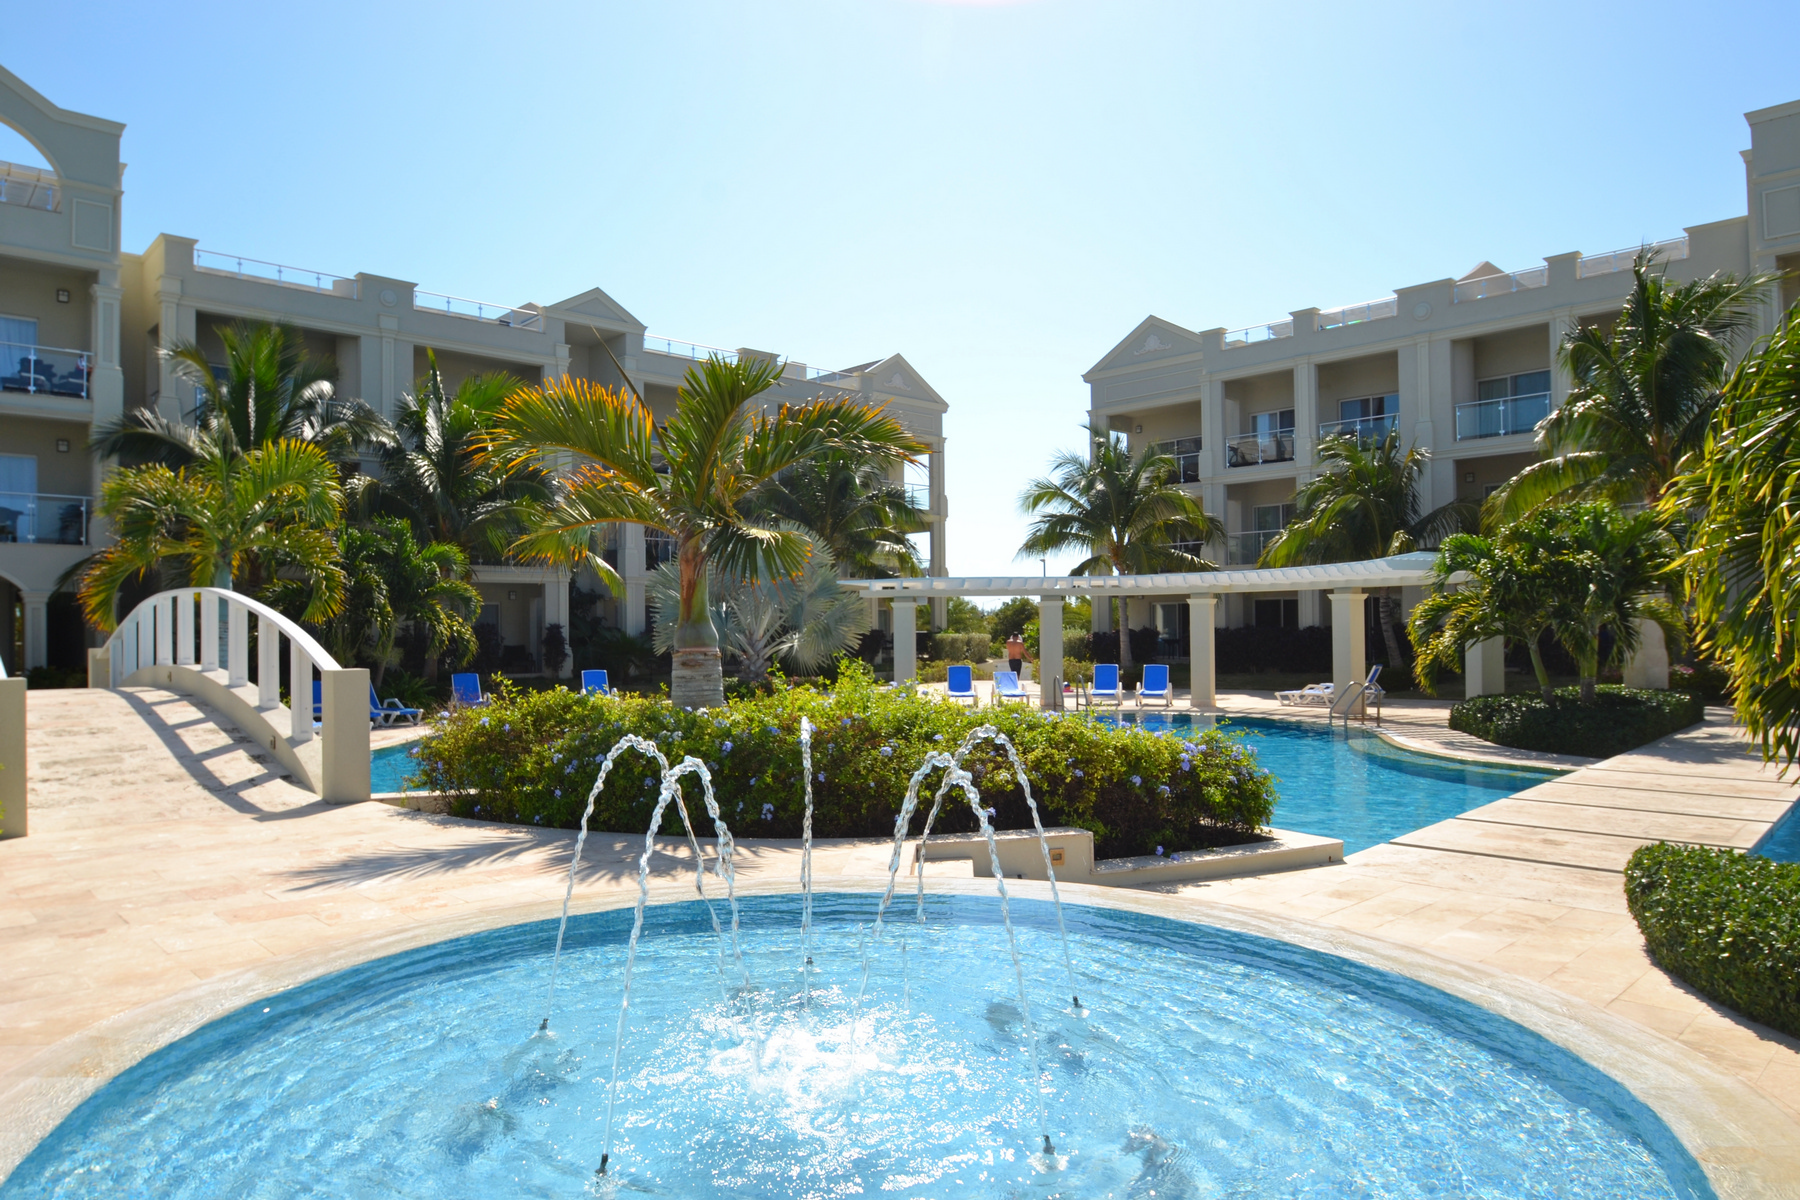 Condominium for Sale at The Atrium Resort - Suite R3-6 Leeward, Providenciales, Turks And Caicos Islands